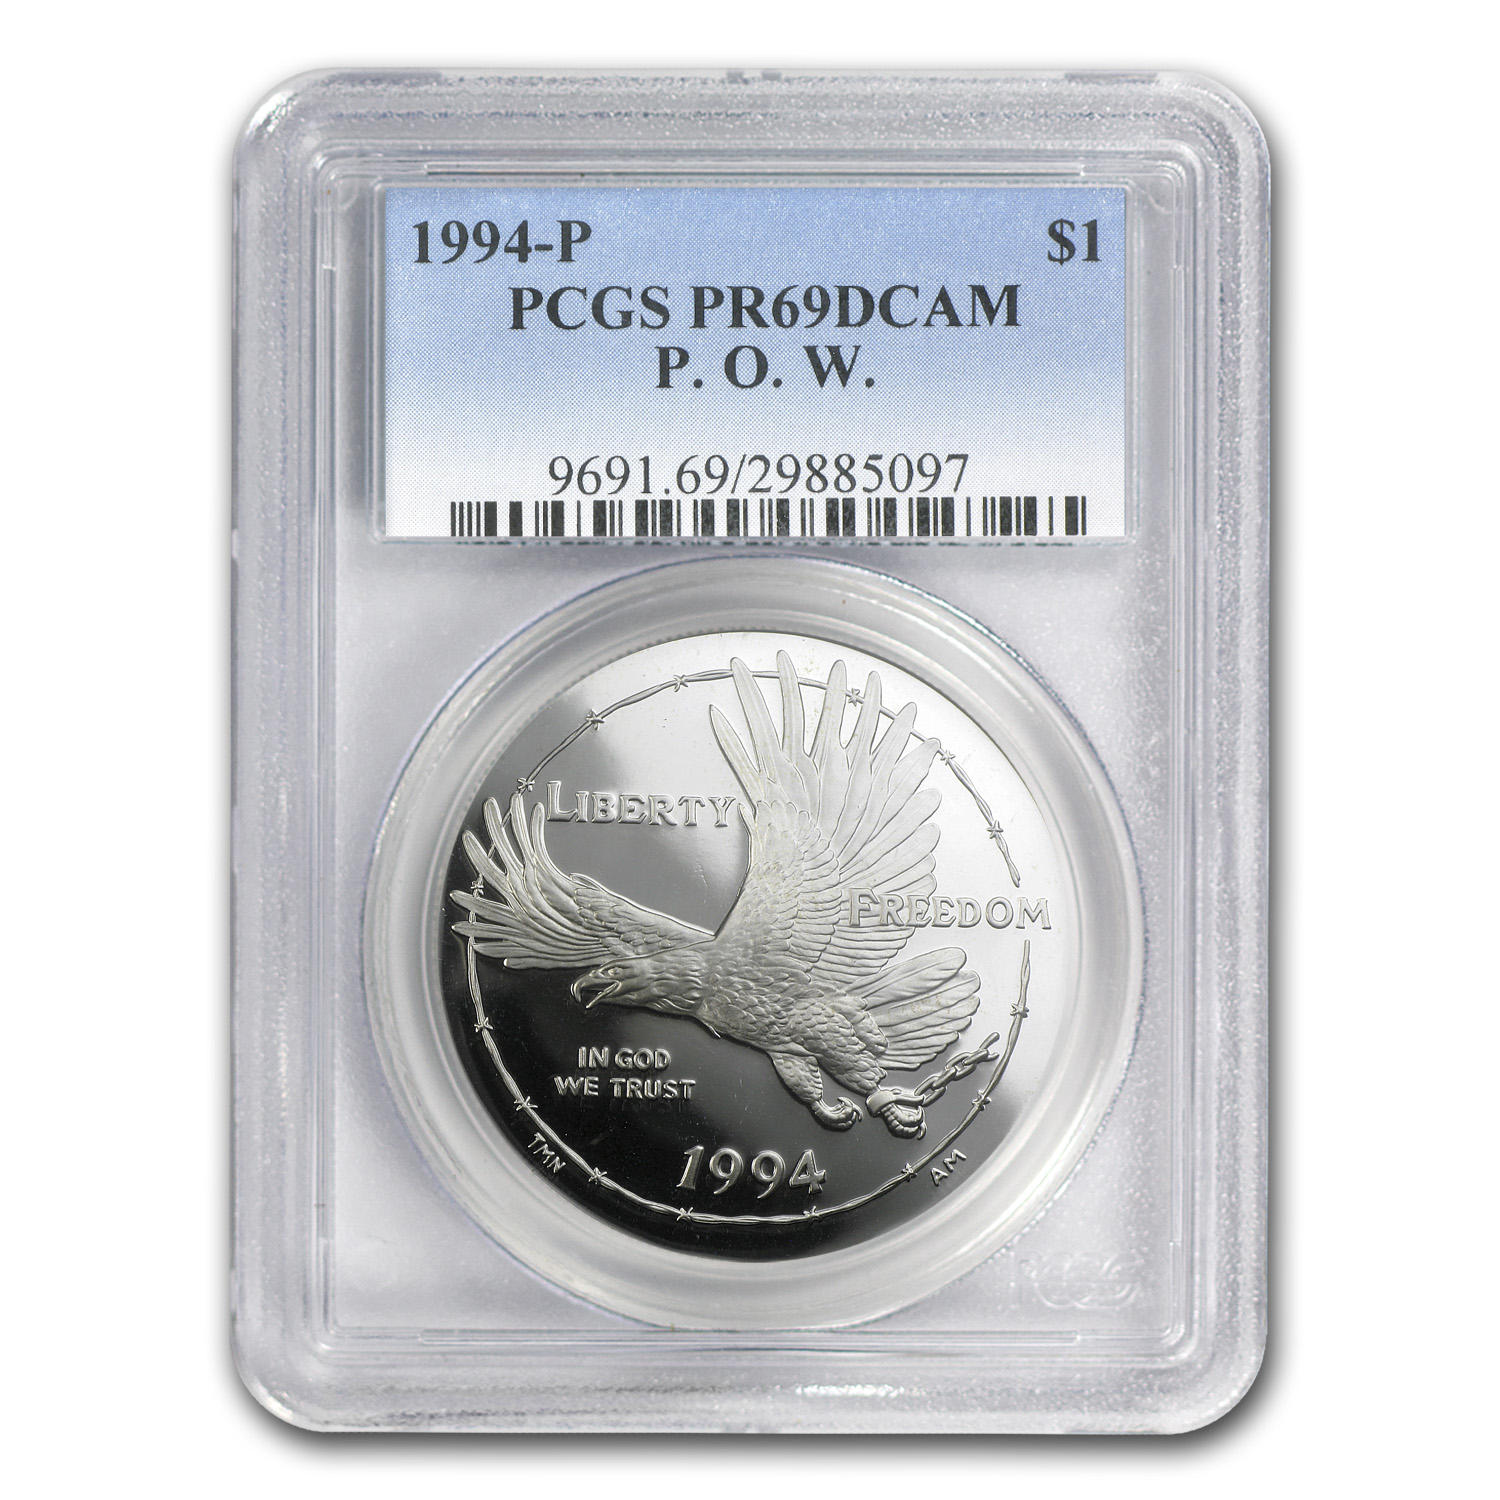 1994-P Prisoner of War $1 Silver Commemorative PR-69 PCGS